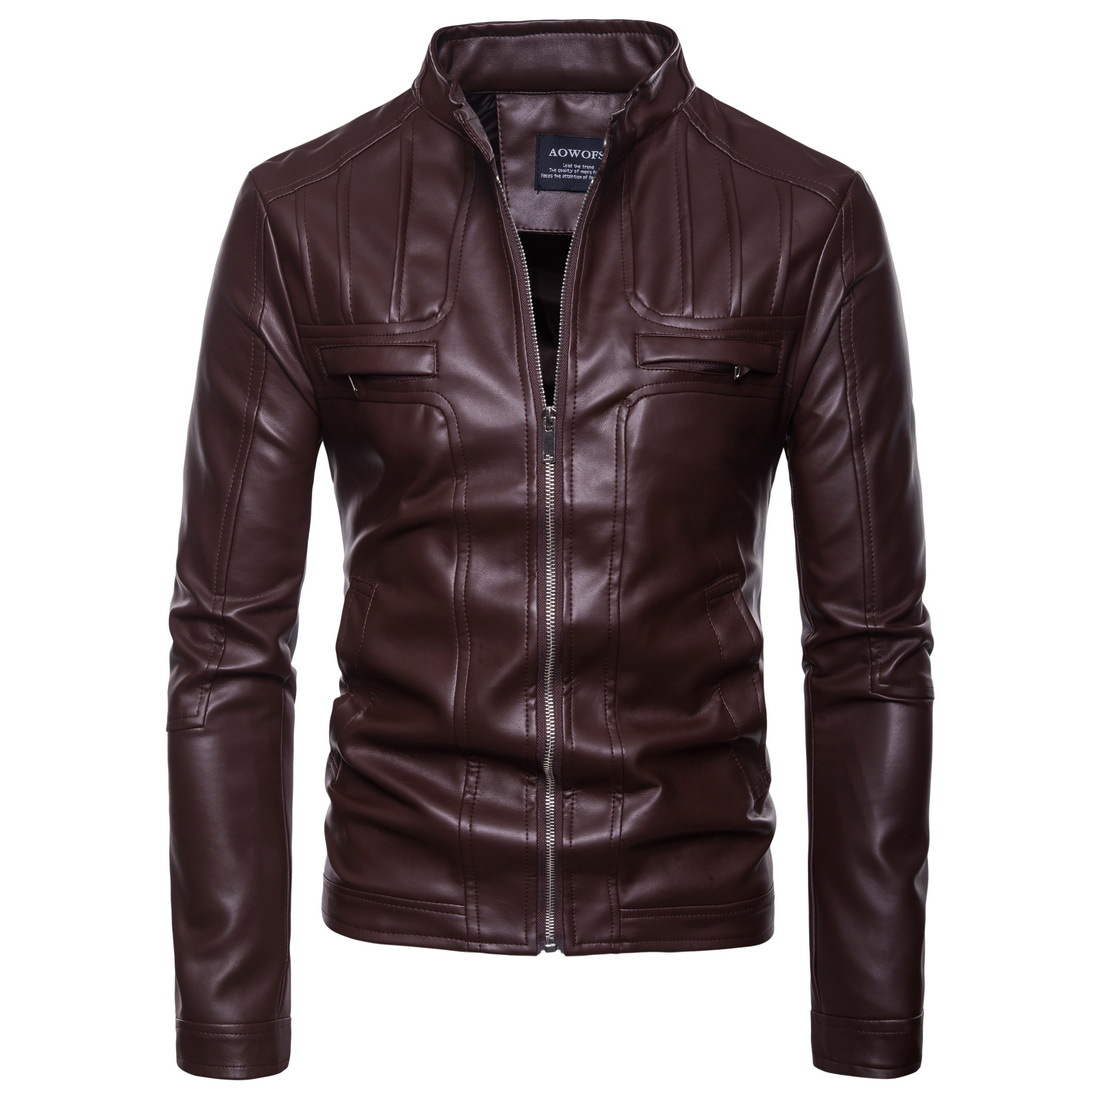 dd5afd5f375fd PU Leather Coat Men EUR Size 2018 New Male Locomotive Vertical Collar  Leather Jacket Handsome Leather Jacket Plus Size Outwear-in Faux Leather  Coats from ...